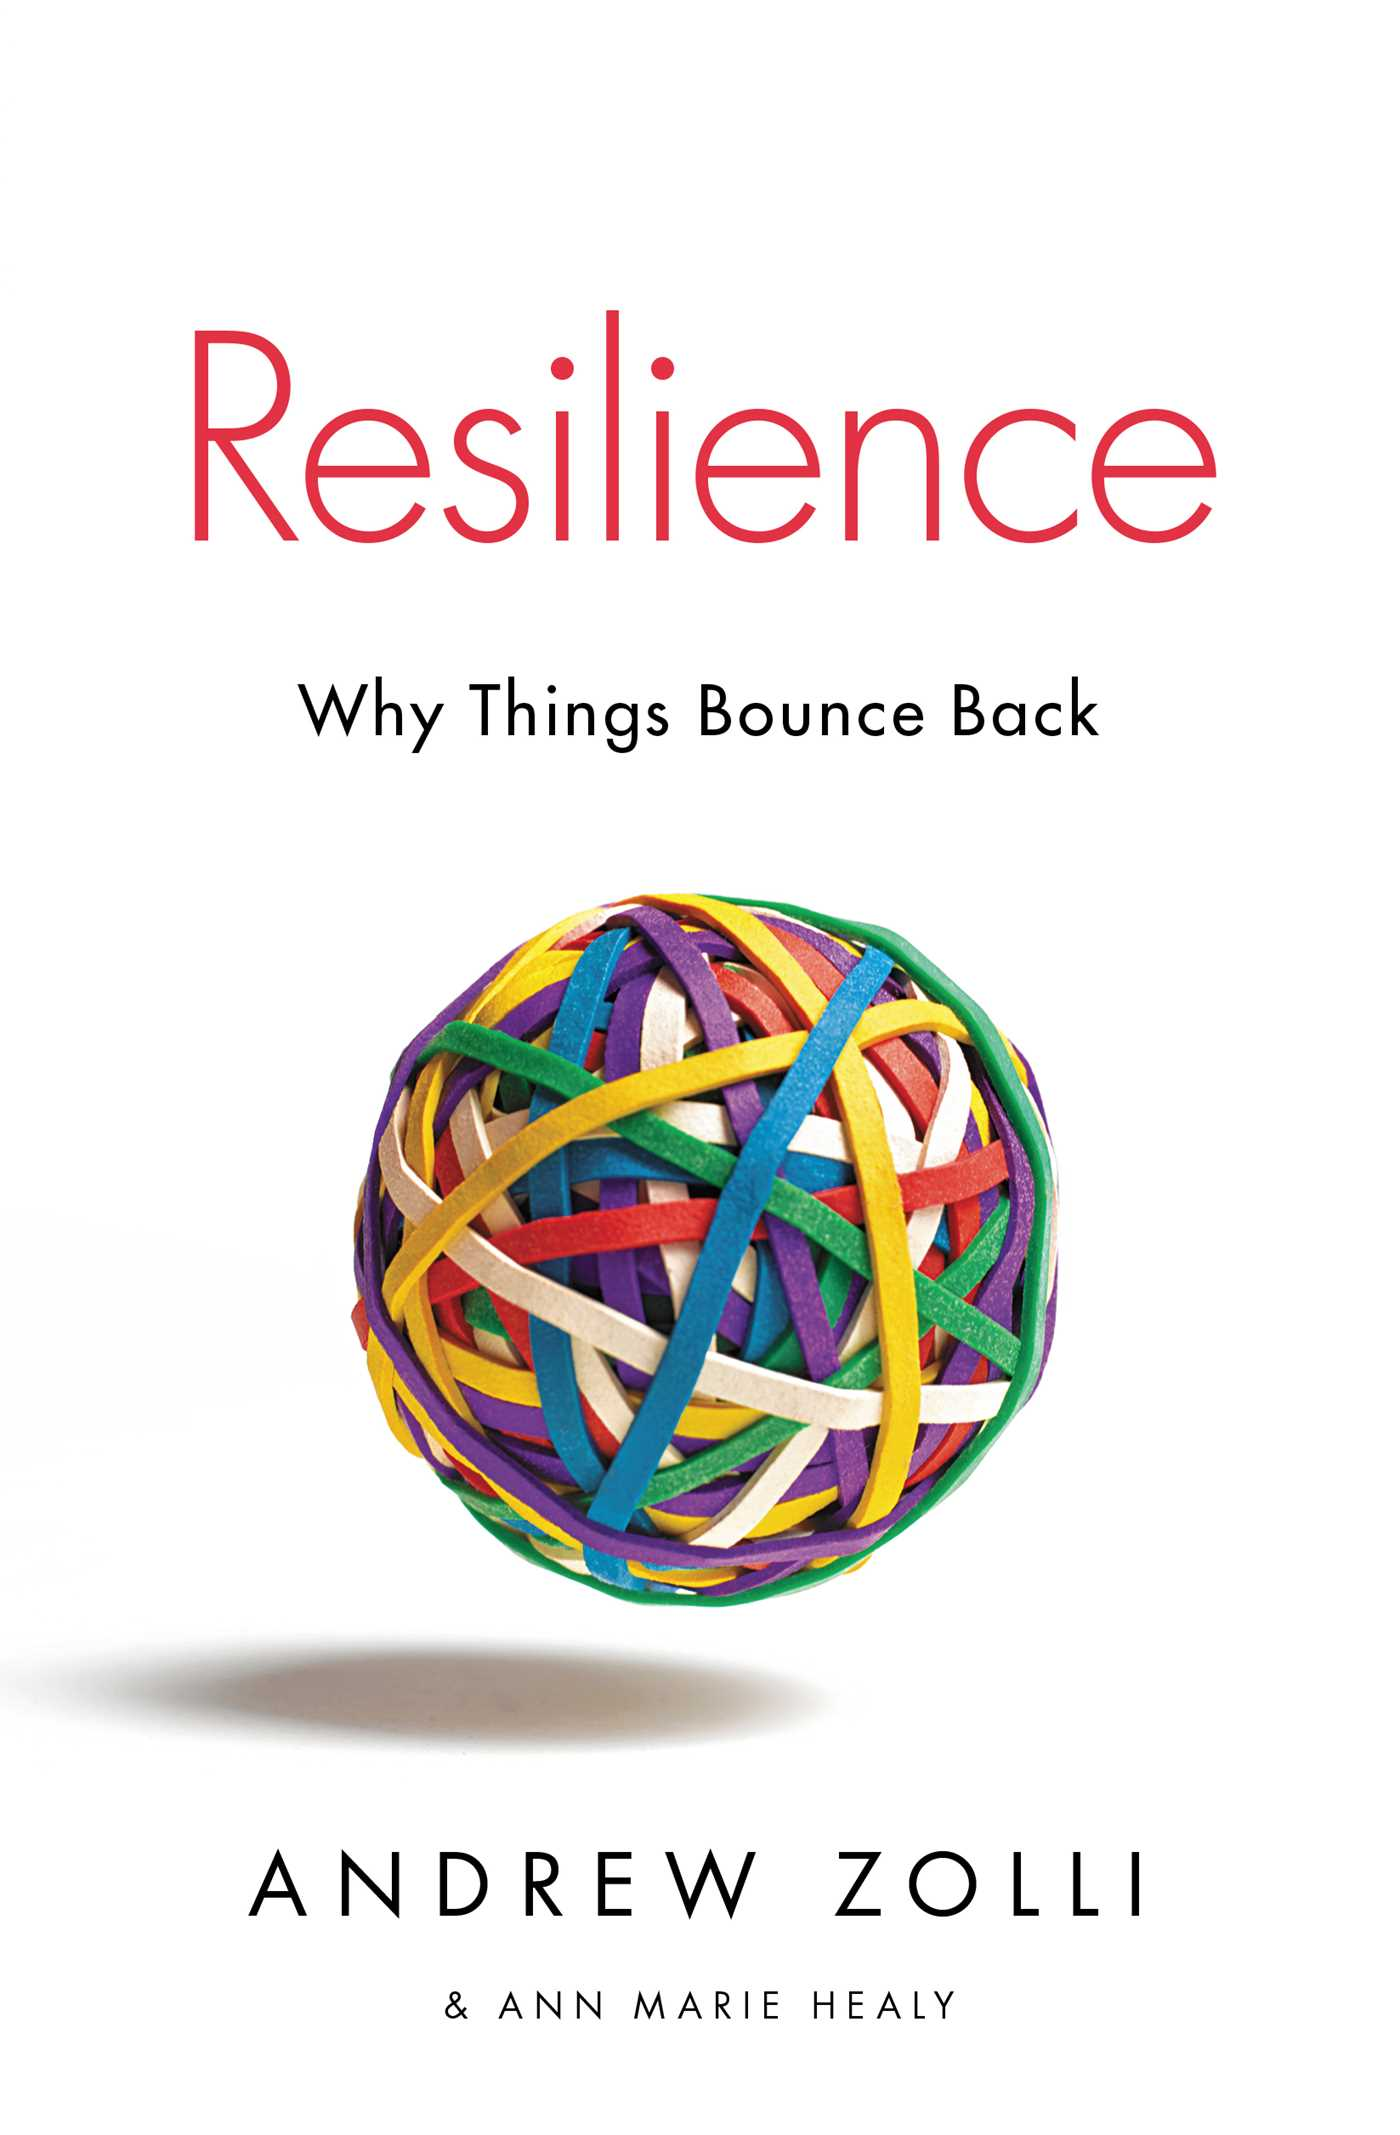 Download Ebook Resilience by Andrew Zolli Pdf